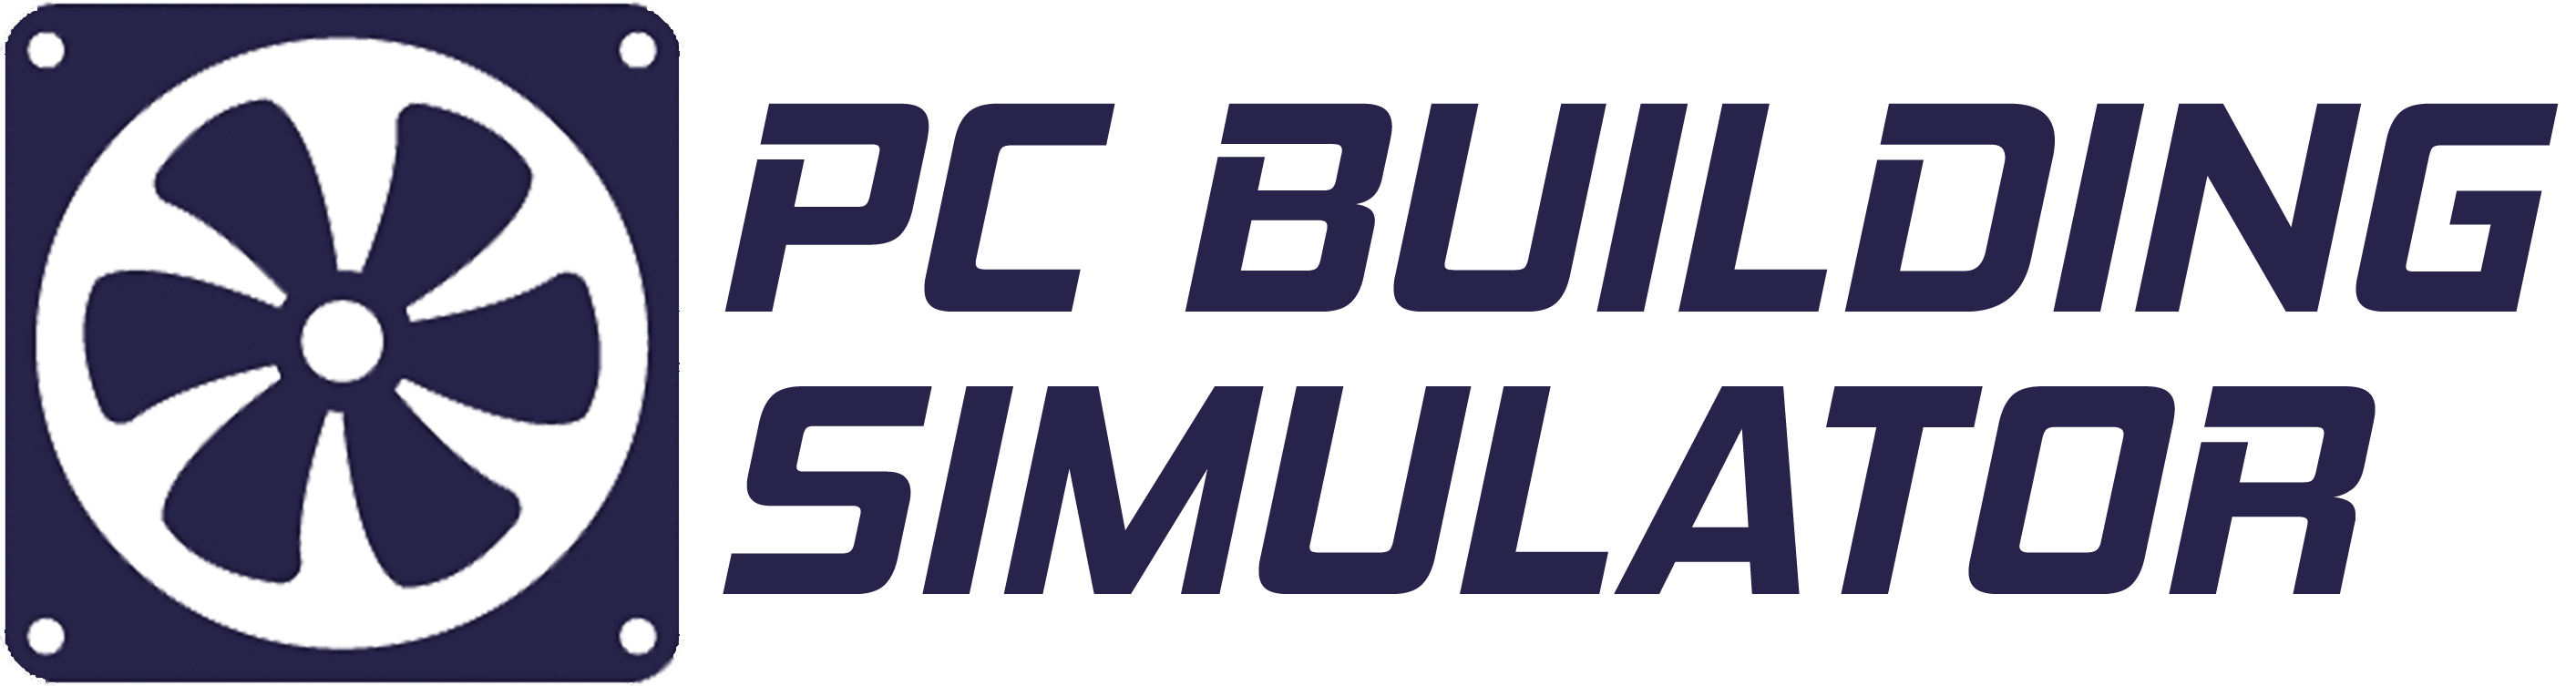 pc building simulator learn how to build your own pc demo edit should mention the demo is a pre alpha build